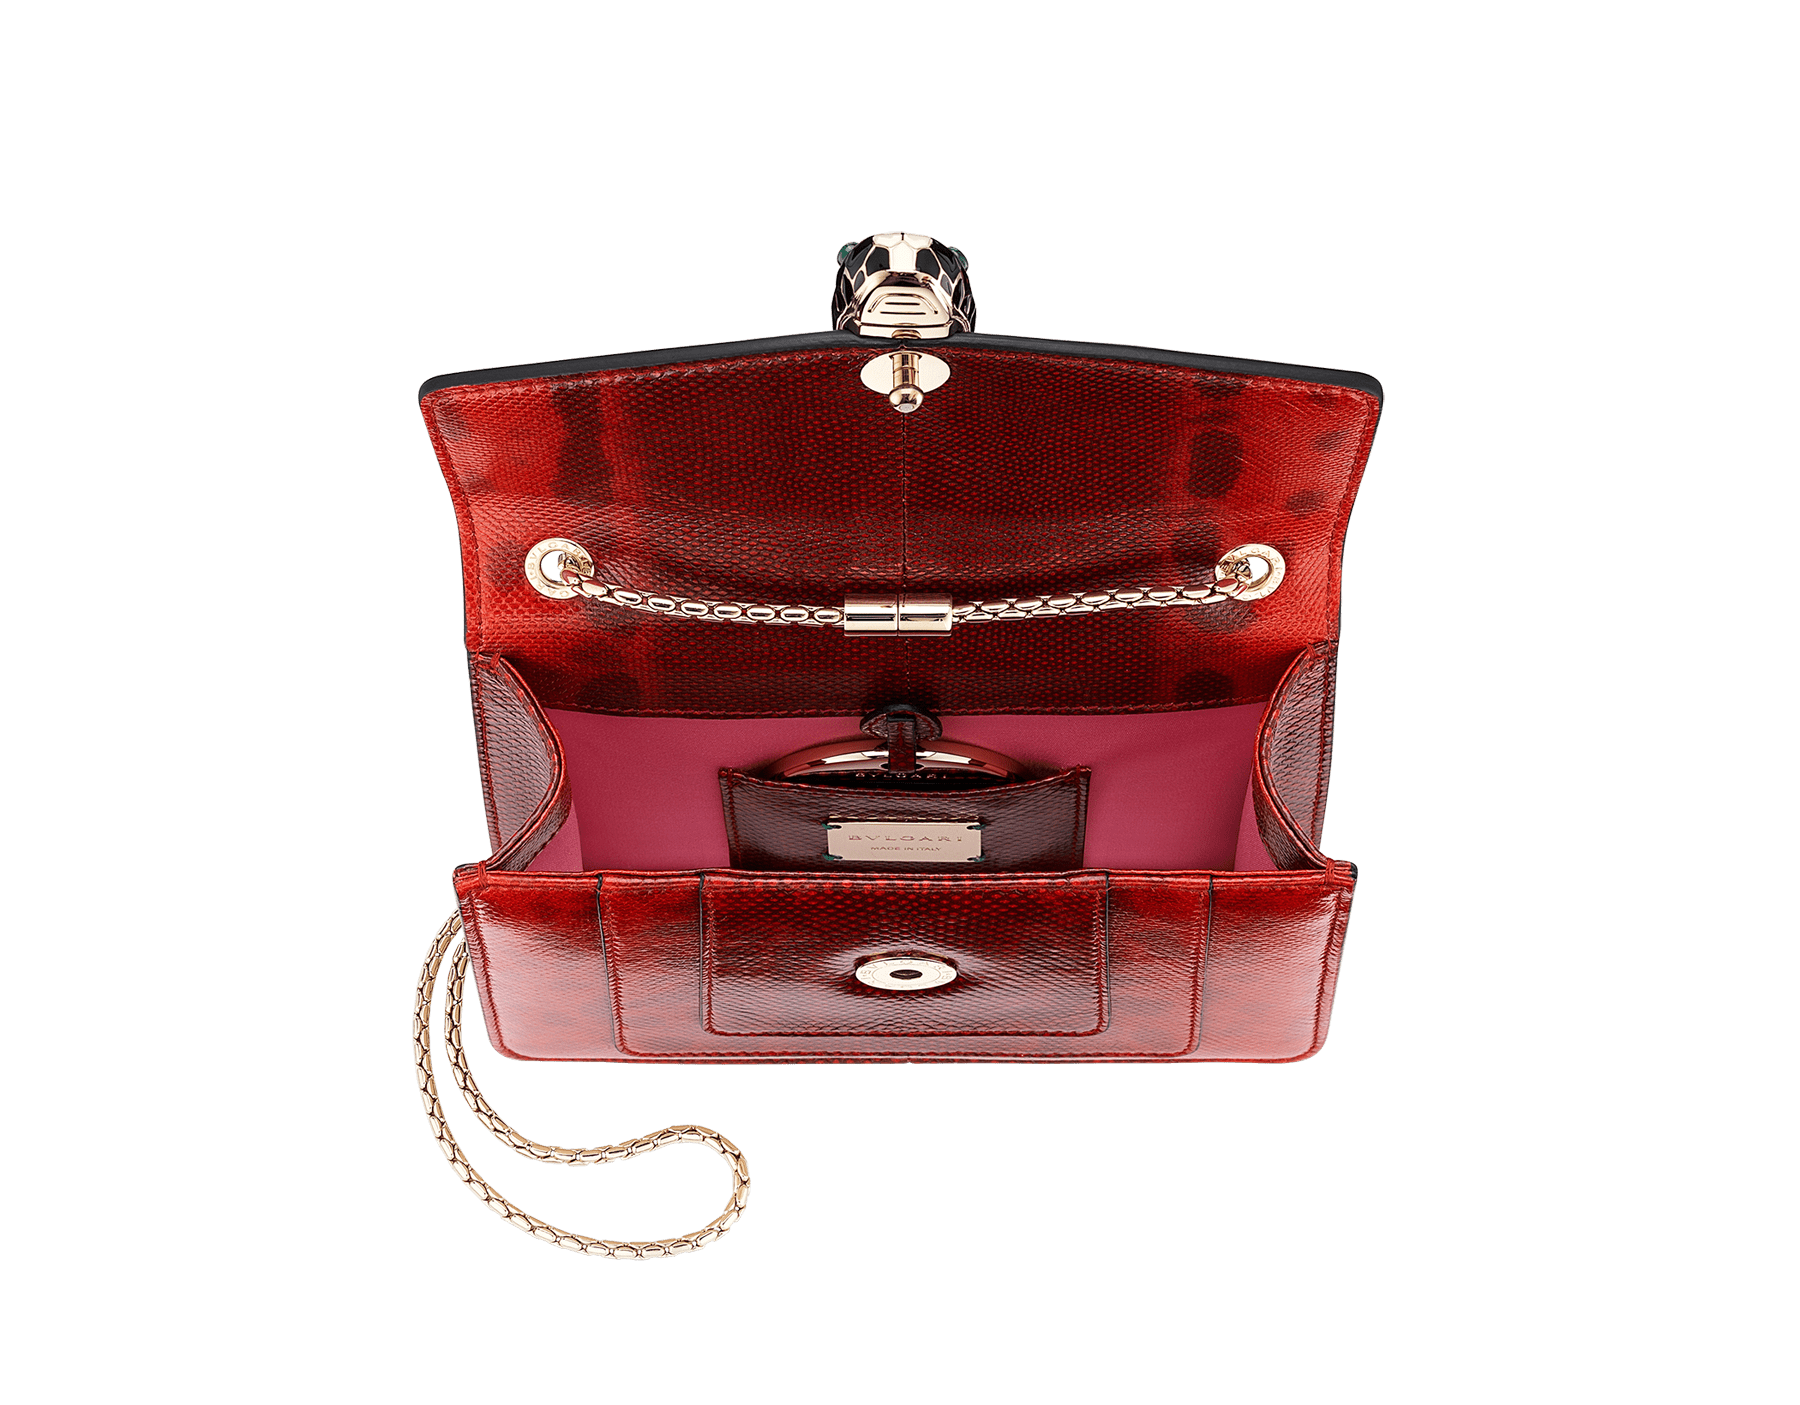 """Serpenti Forever "" crossbody bag in shiny carmine jasper karung skin. Iconic snakehead closure in light gold plated brass enriched with black and white enamel and green malachite eyes 287104 image 4"